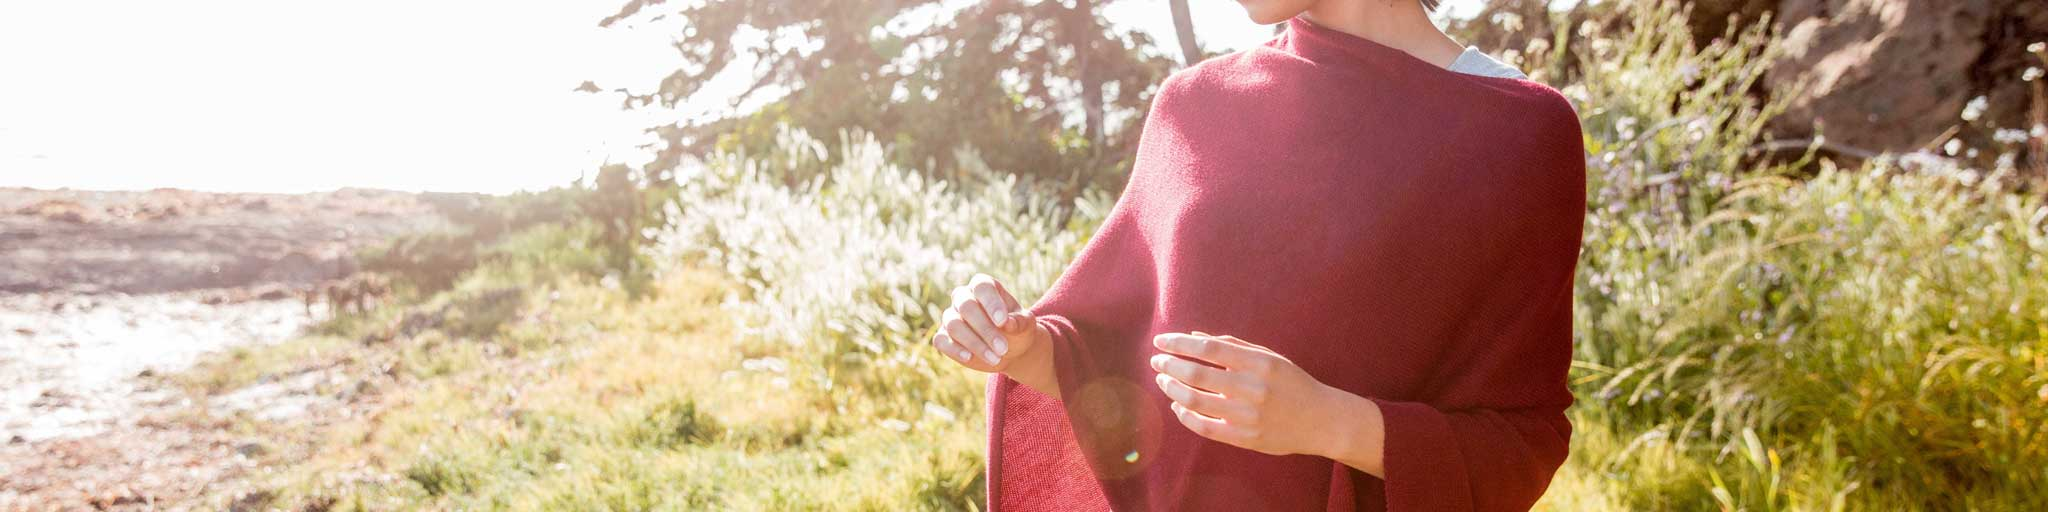 Womens Poncho, made from organic cotton colored with safe low-impact dyes